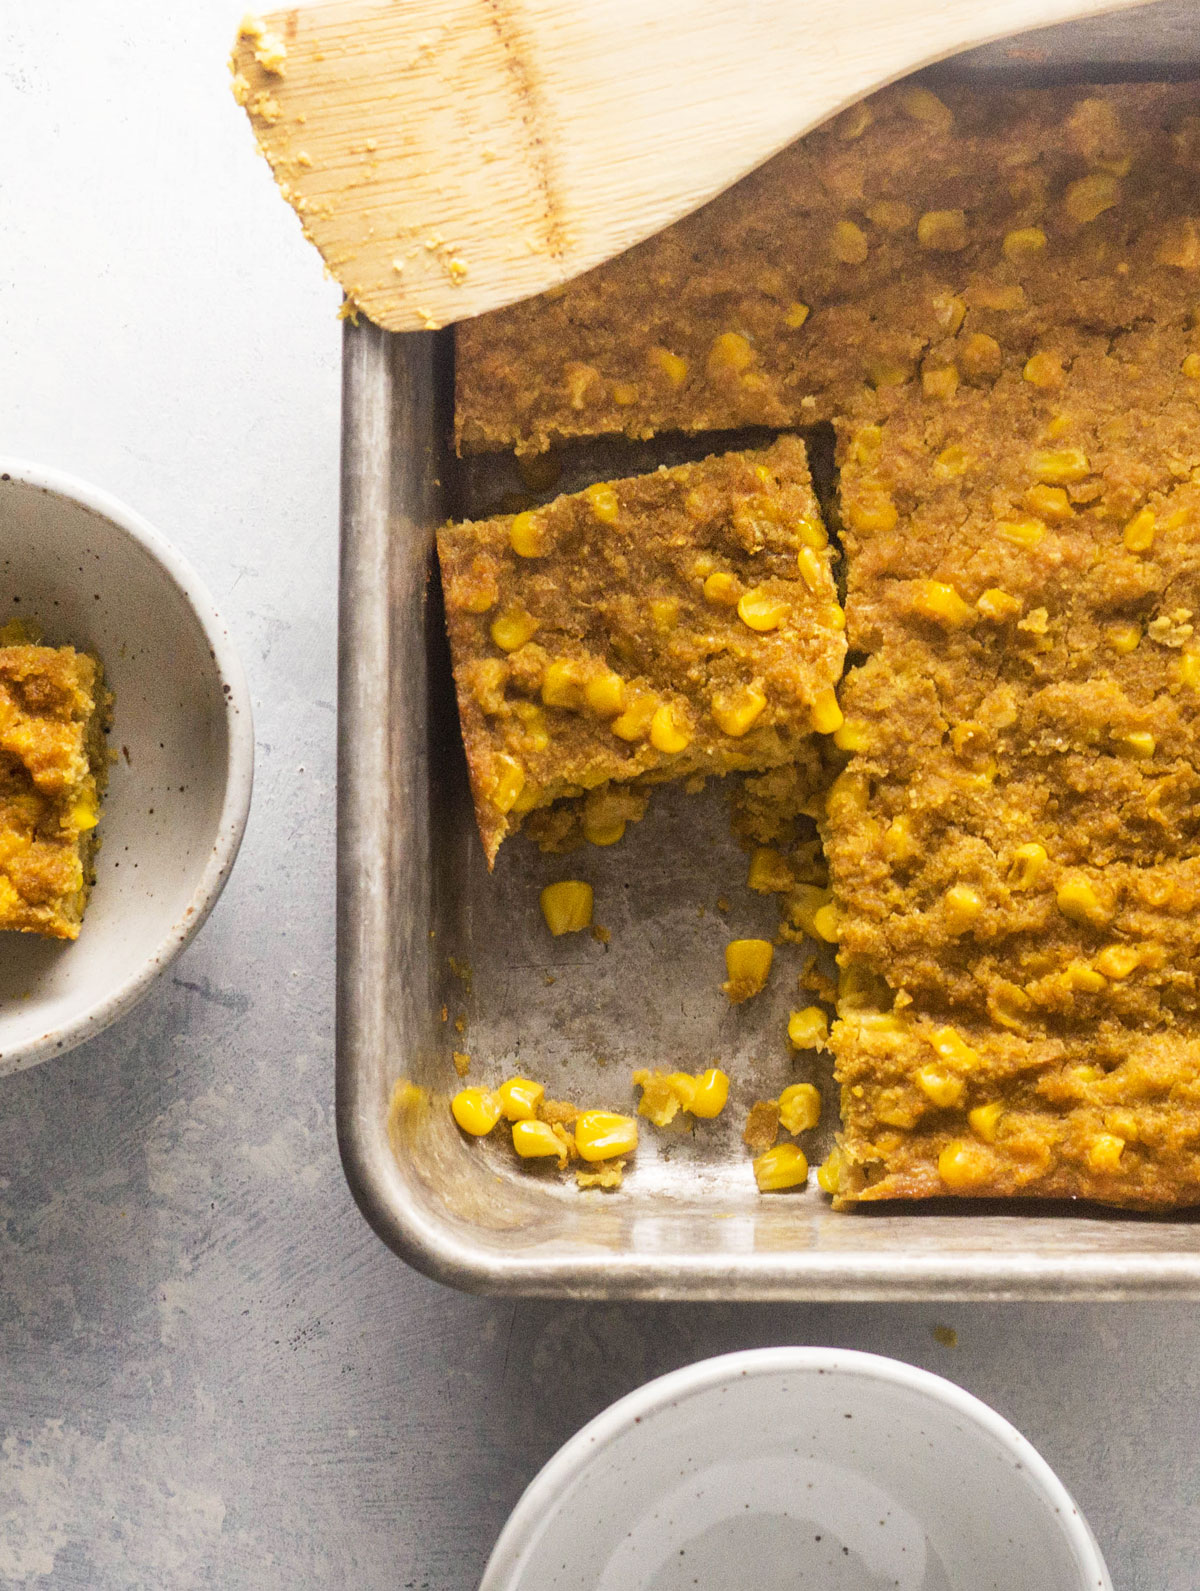 vegan corn casserole in a baking pan